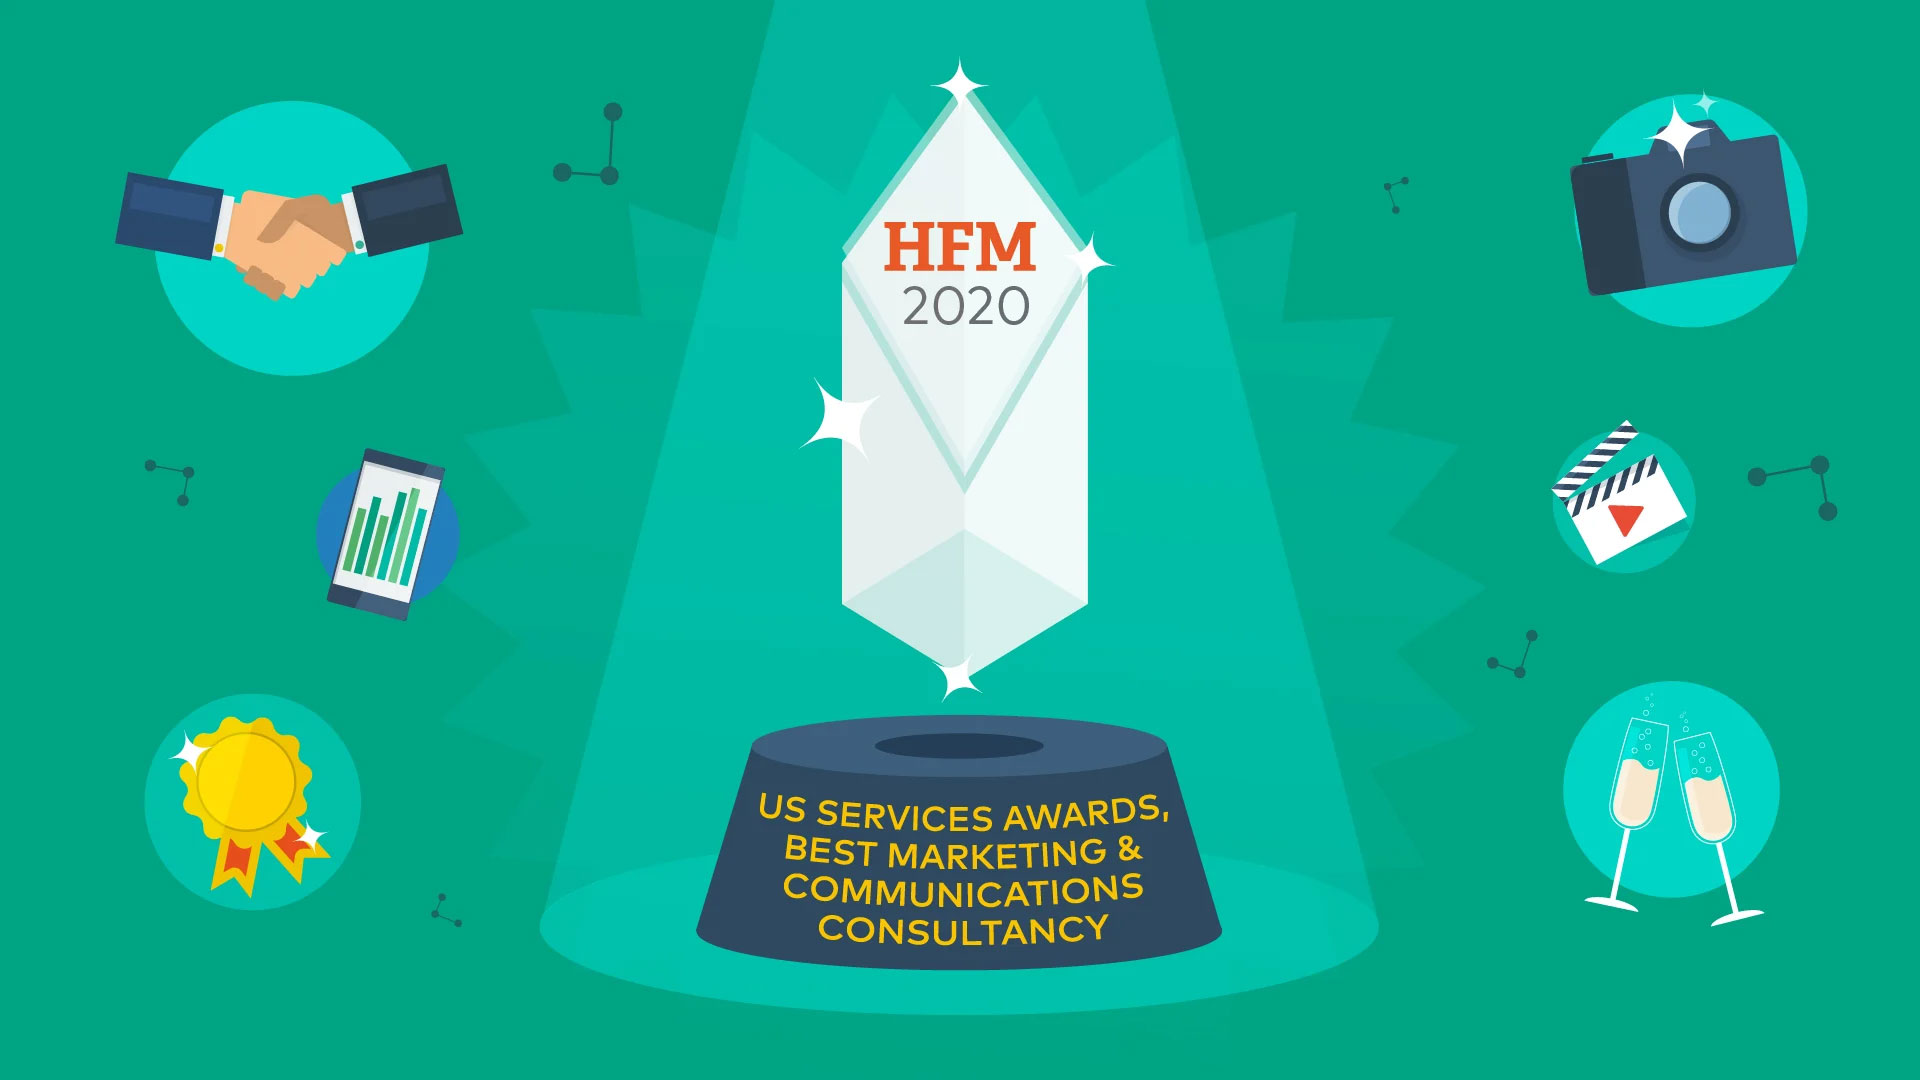 Cover image for post: Best Marketing and Communications Consultancy, HFM US Hedge Fund Services Awards 2020